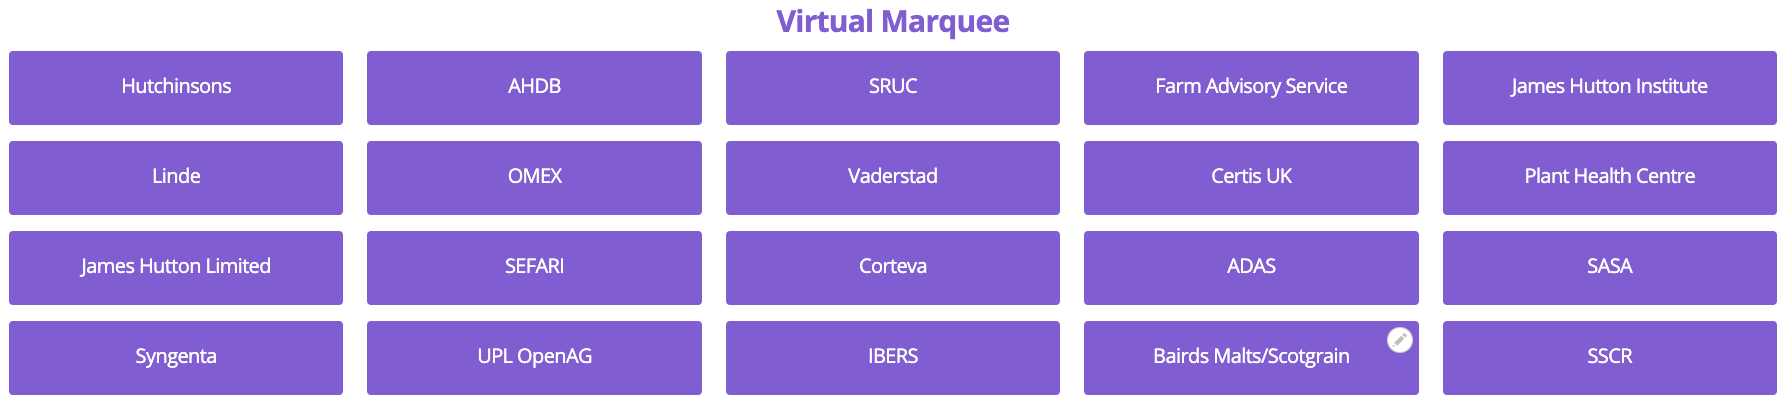 Virtual Marquee Field Map